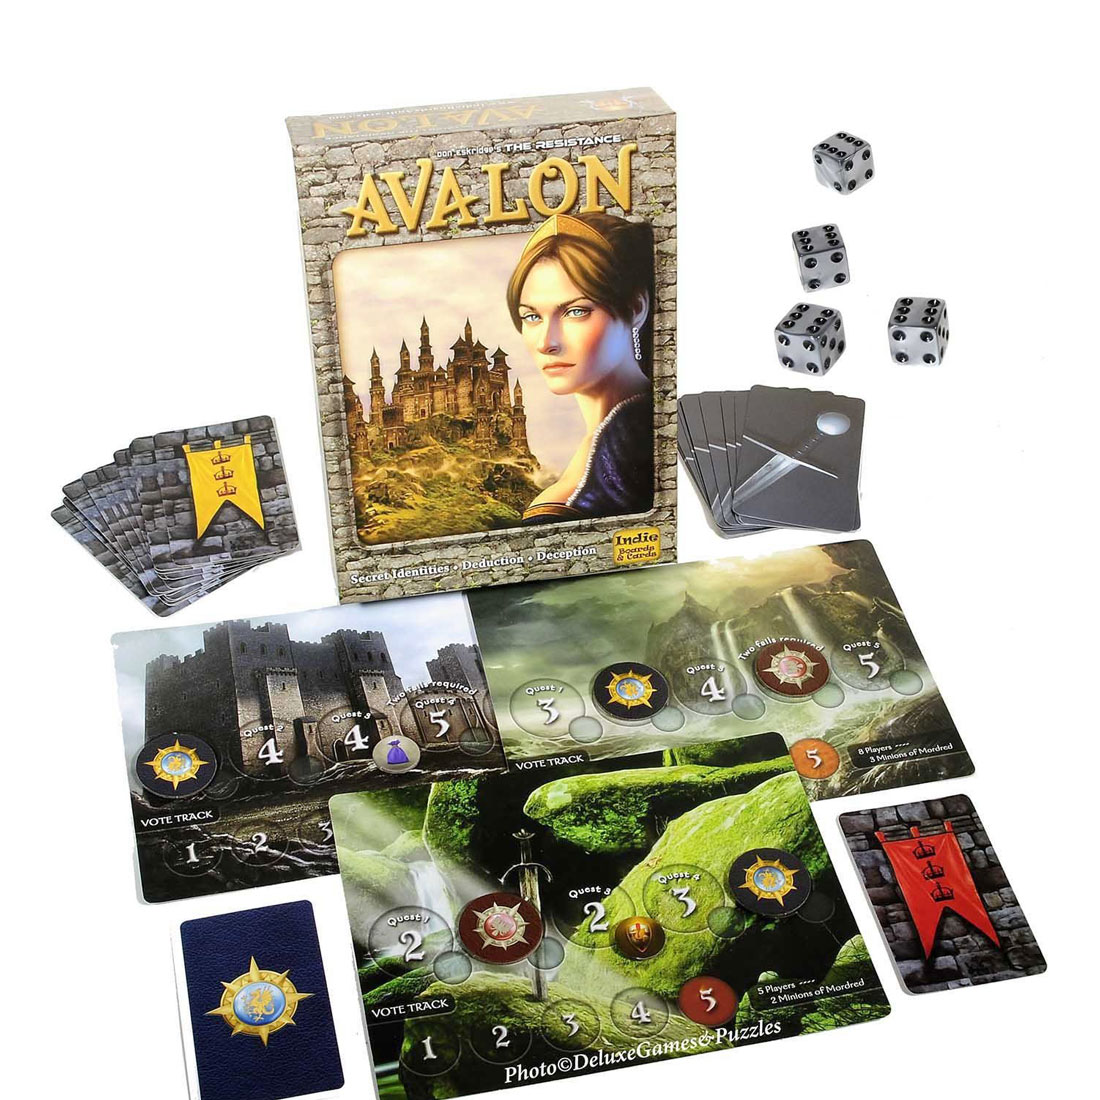 resistance-avalon-board-game-components.jpg